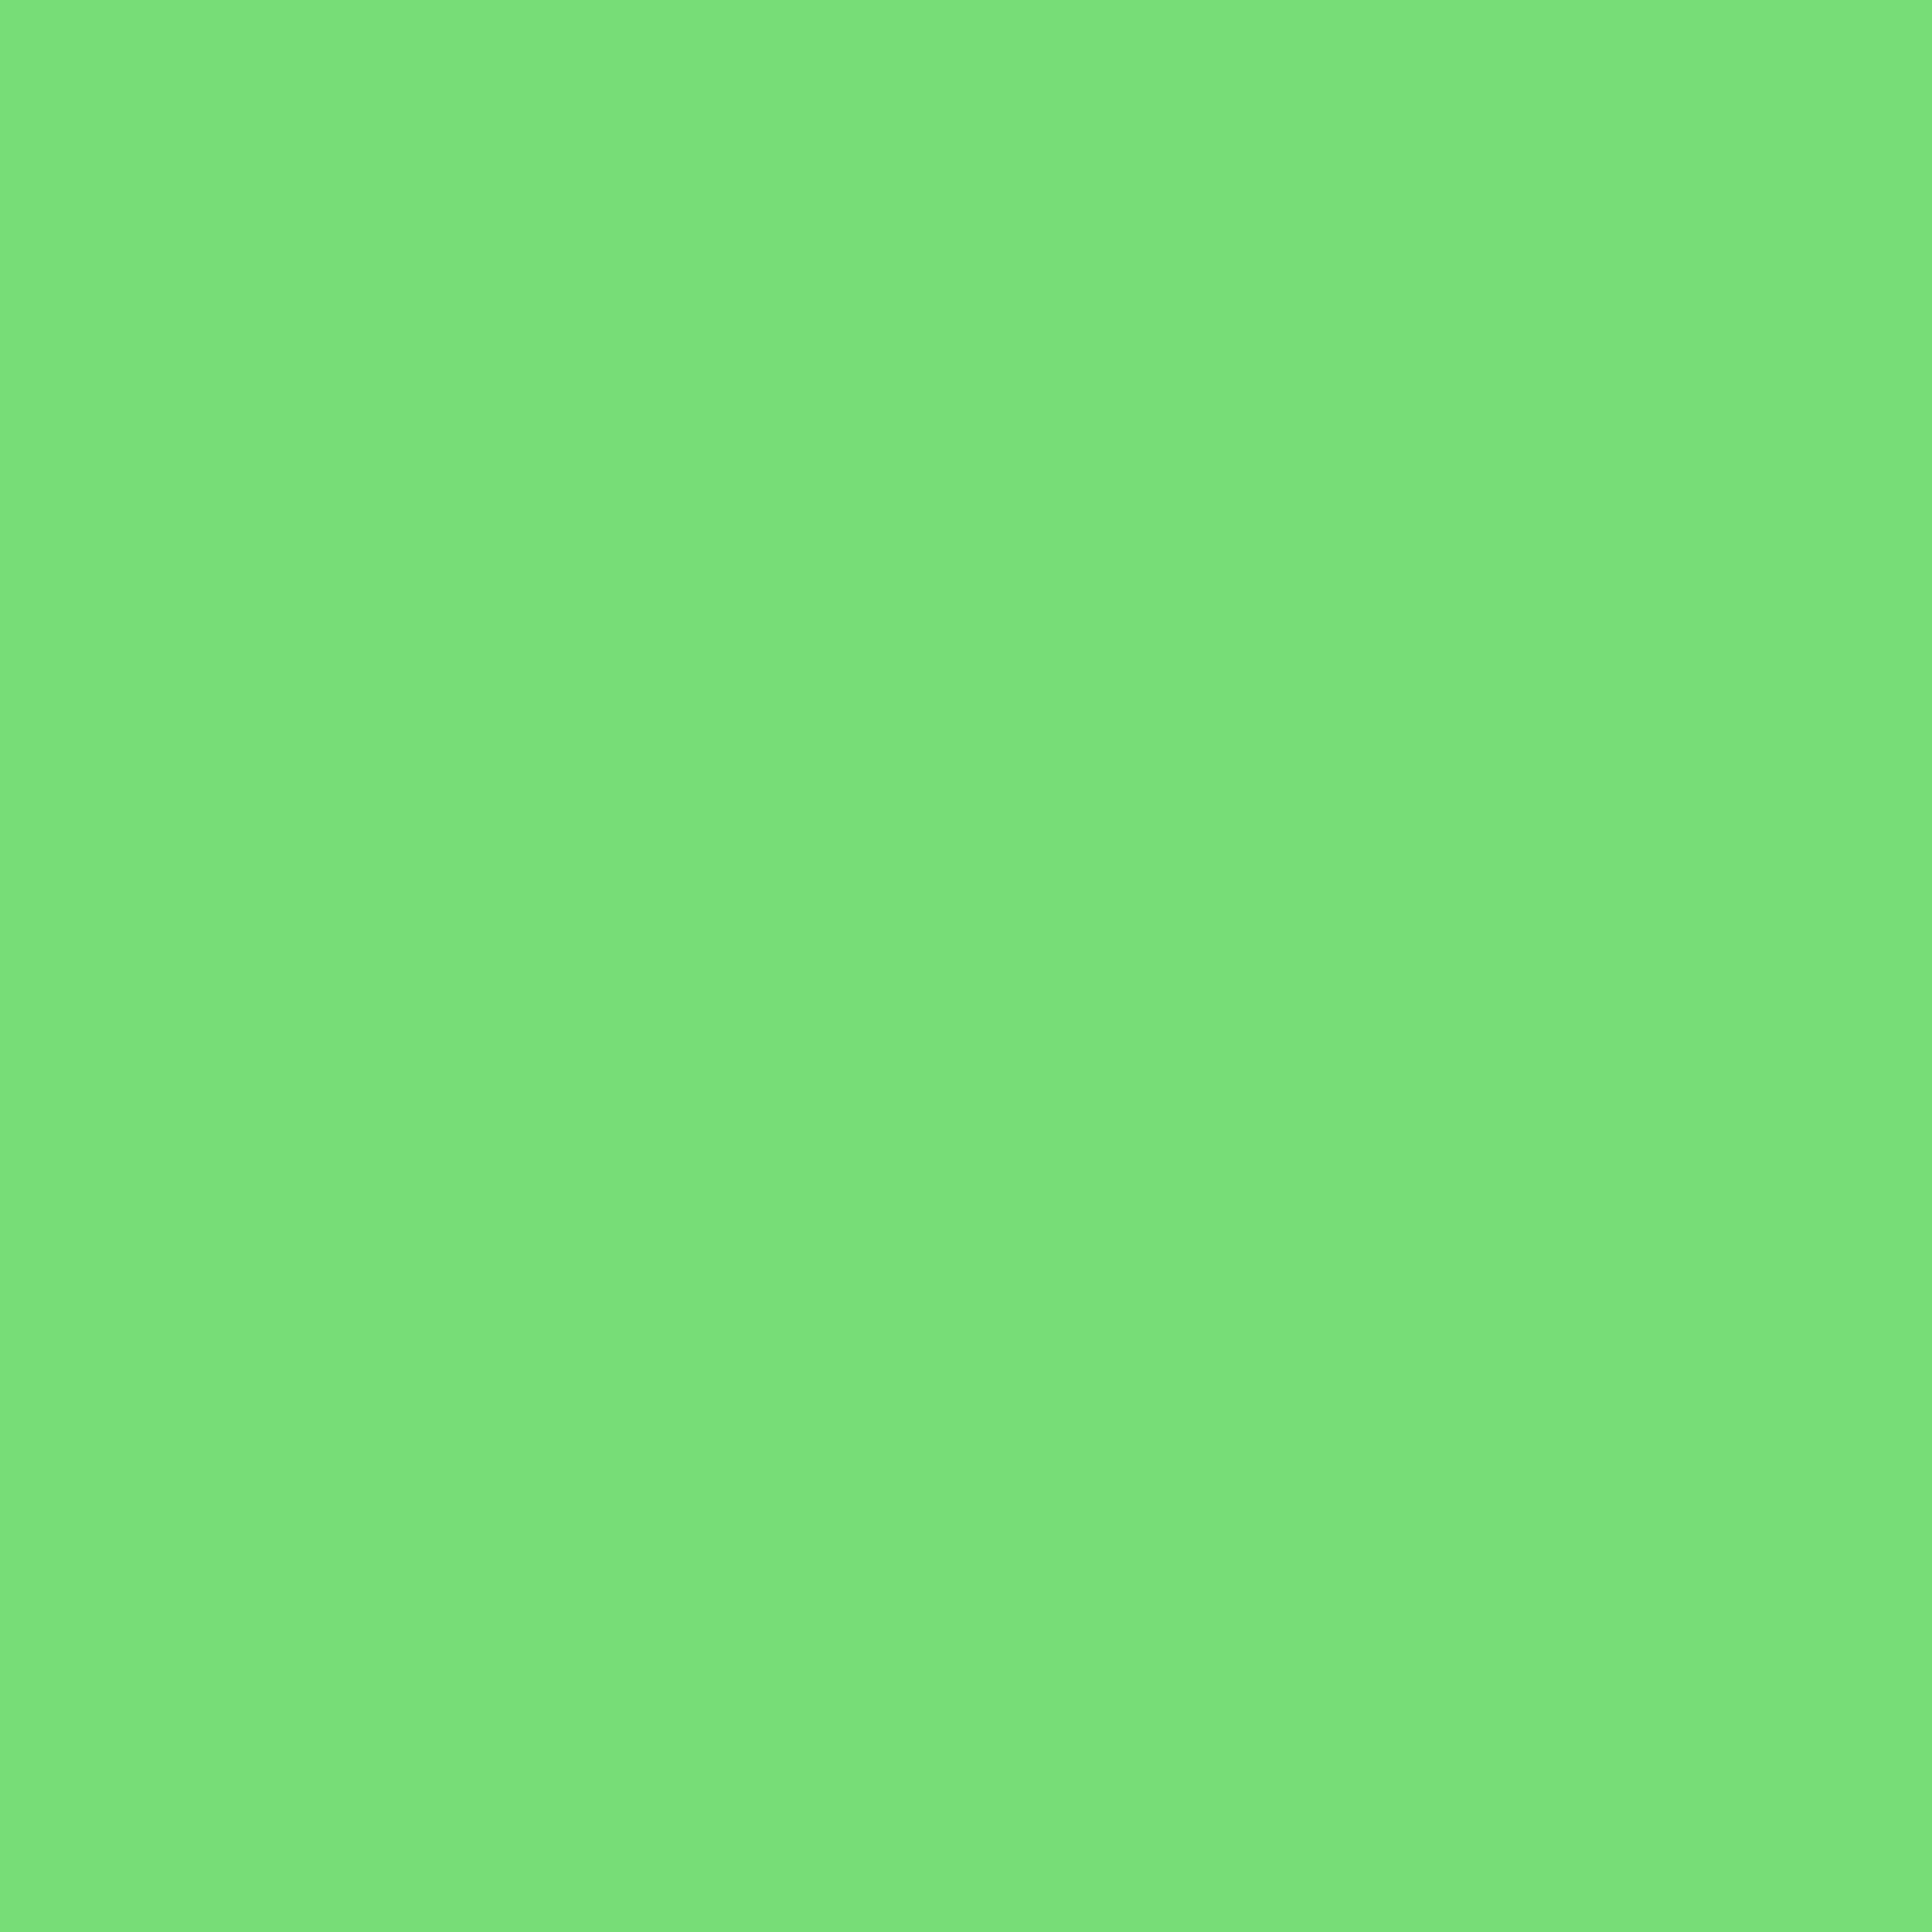 2732x2732 Pastel Green Solid Color Background